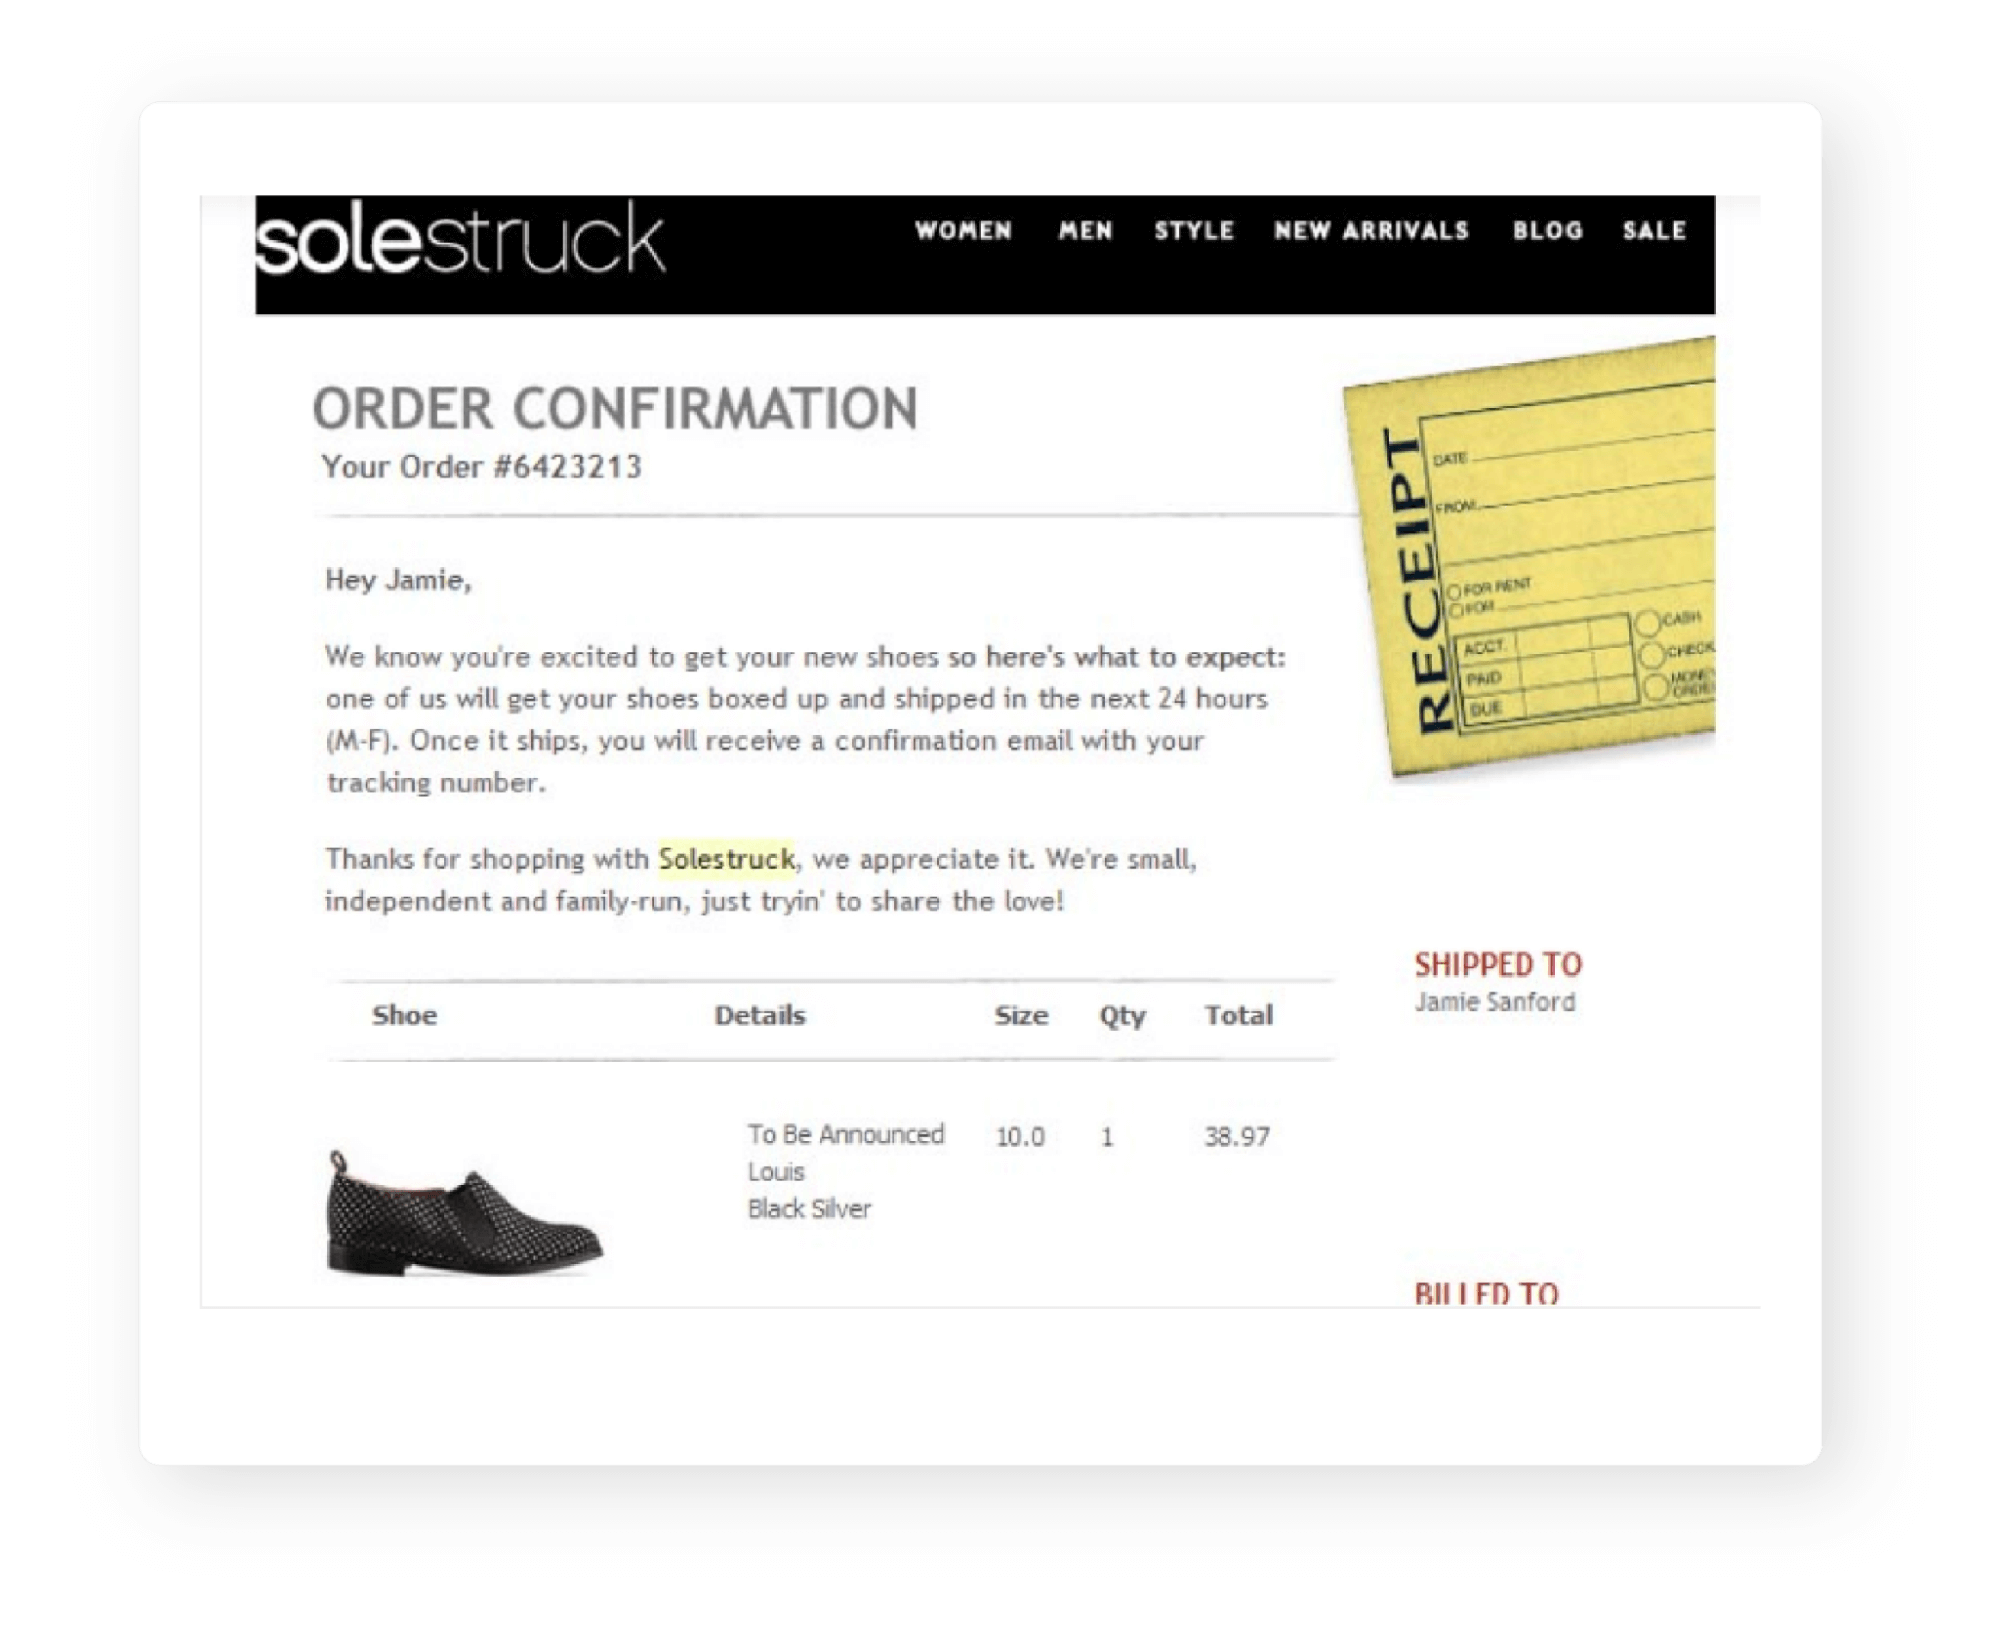 Order Confirmation Email by Solestruck